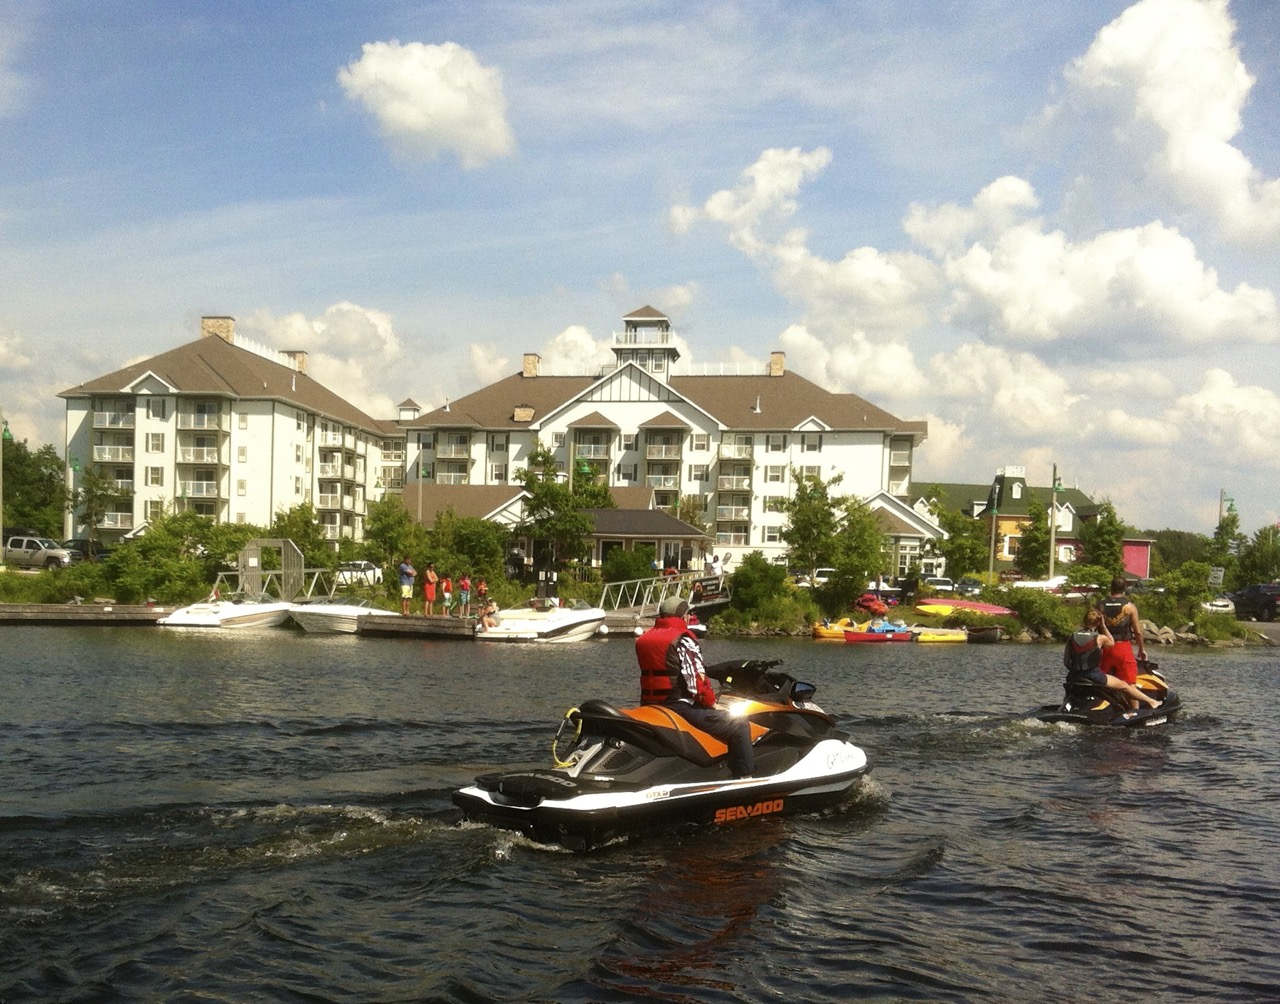 Staging from Residence Inn by Marriott Gravenhurst for a Muskoka fall Sea Doo tour